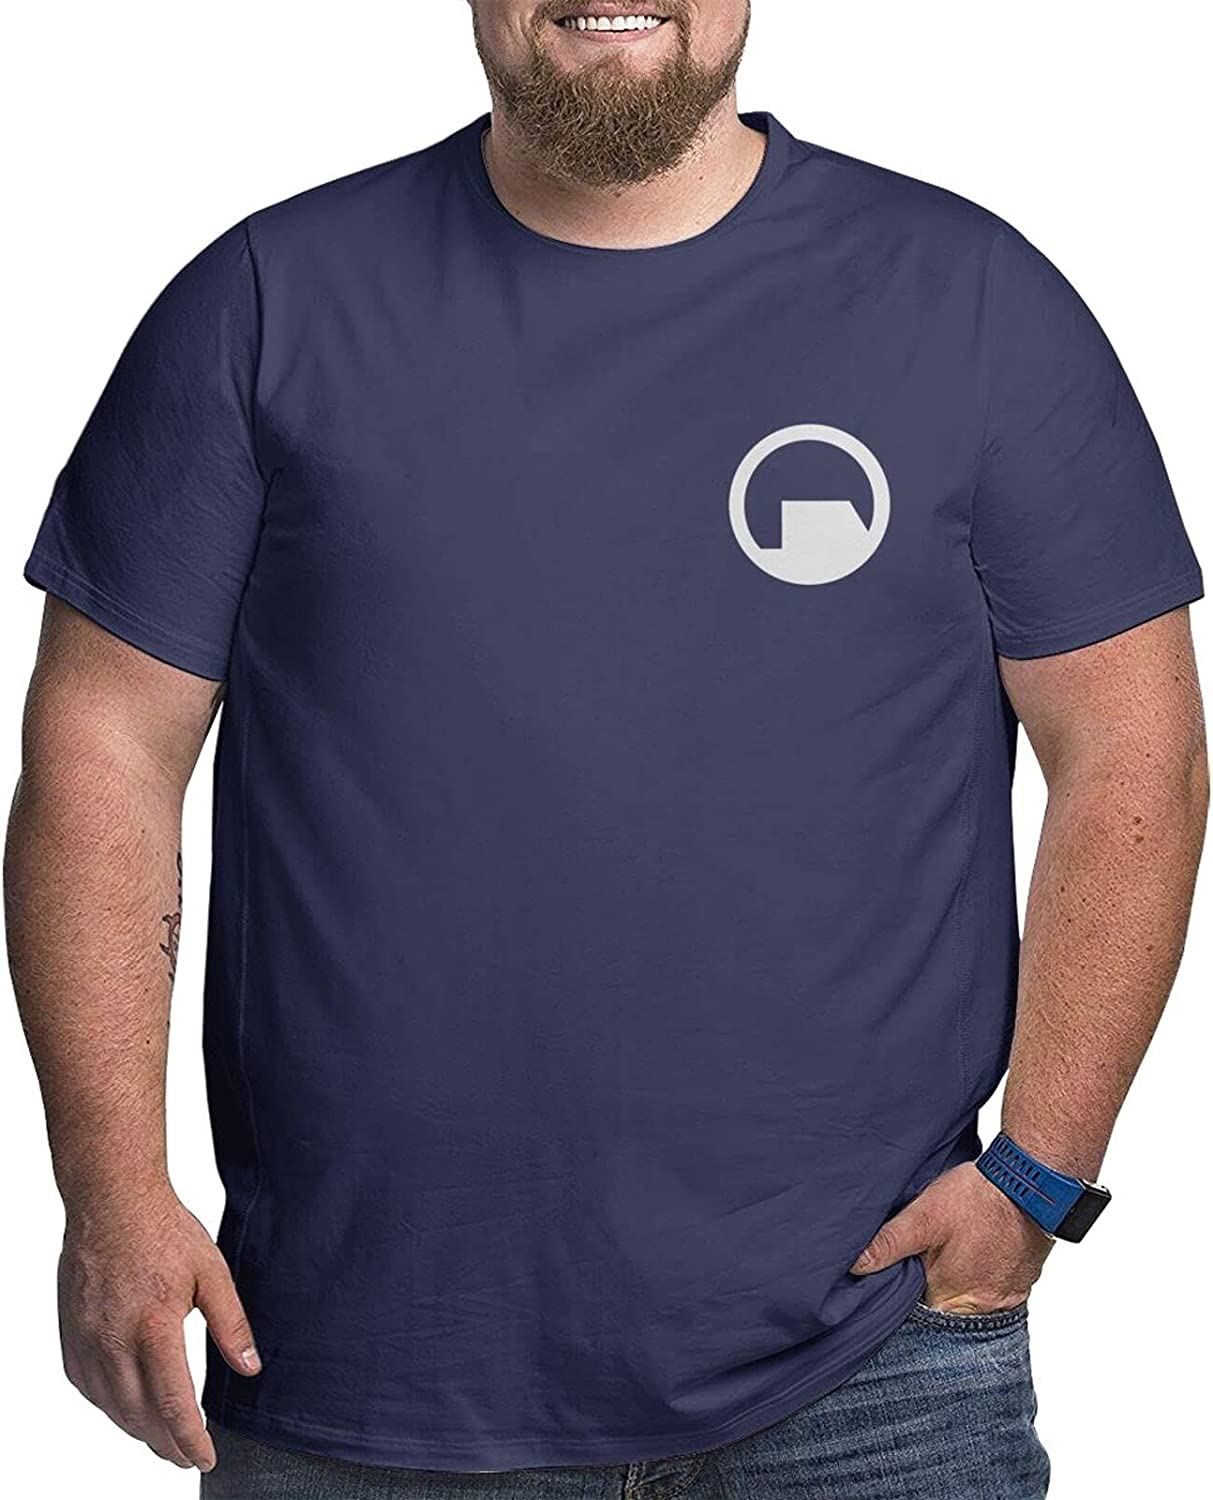 Black Mesa Research Facility Mens Simple Big Size Summer Outdoor Short Sleeve Round Collar Tshirt